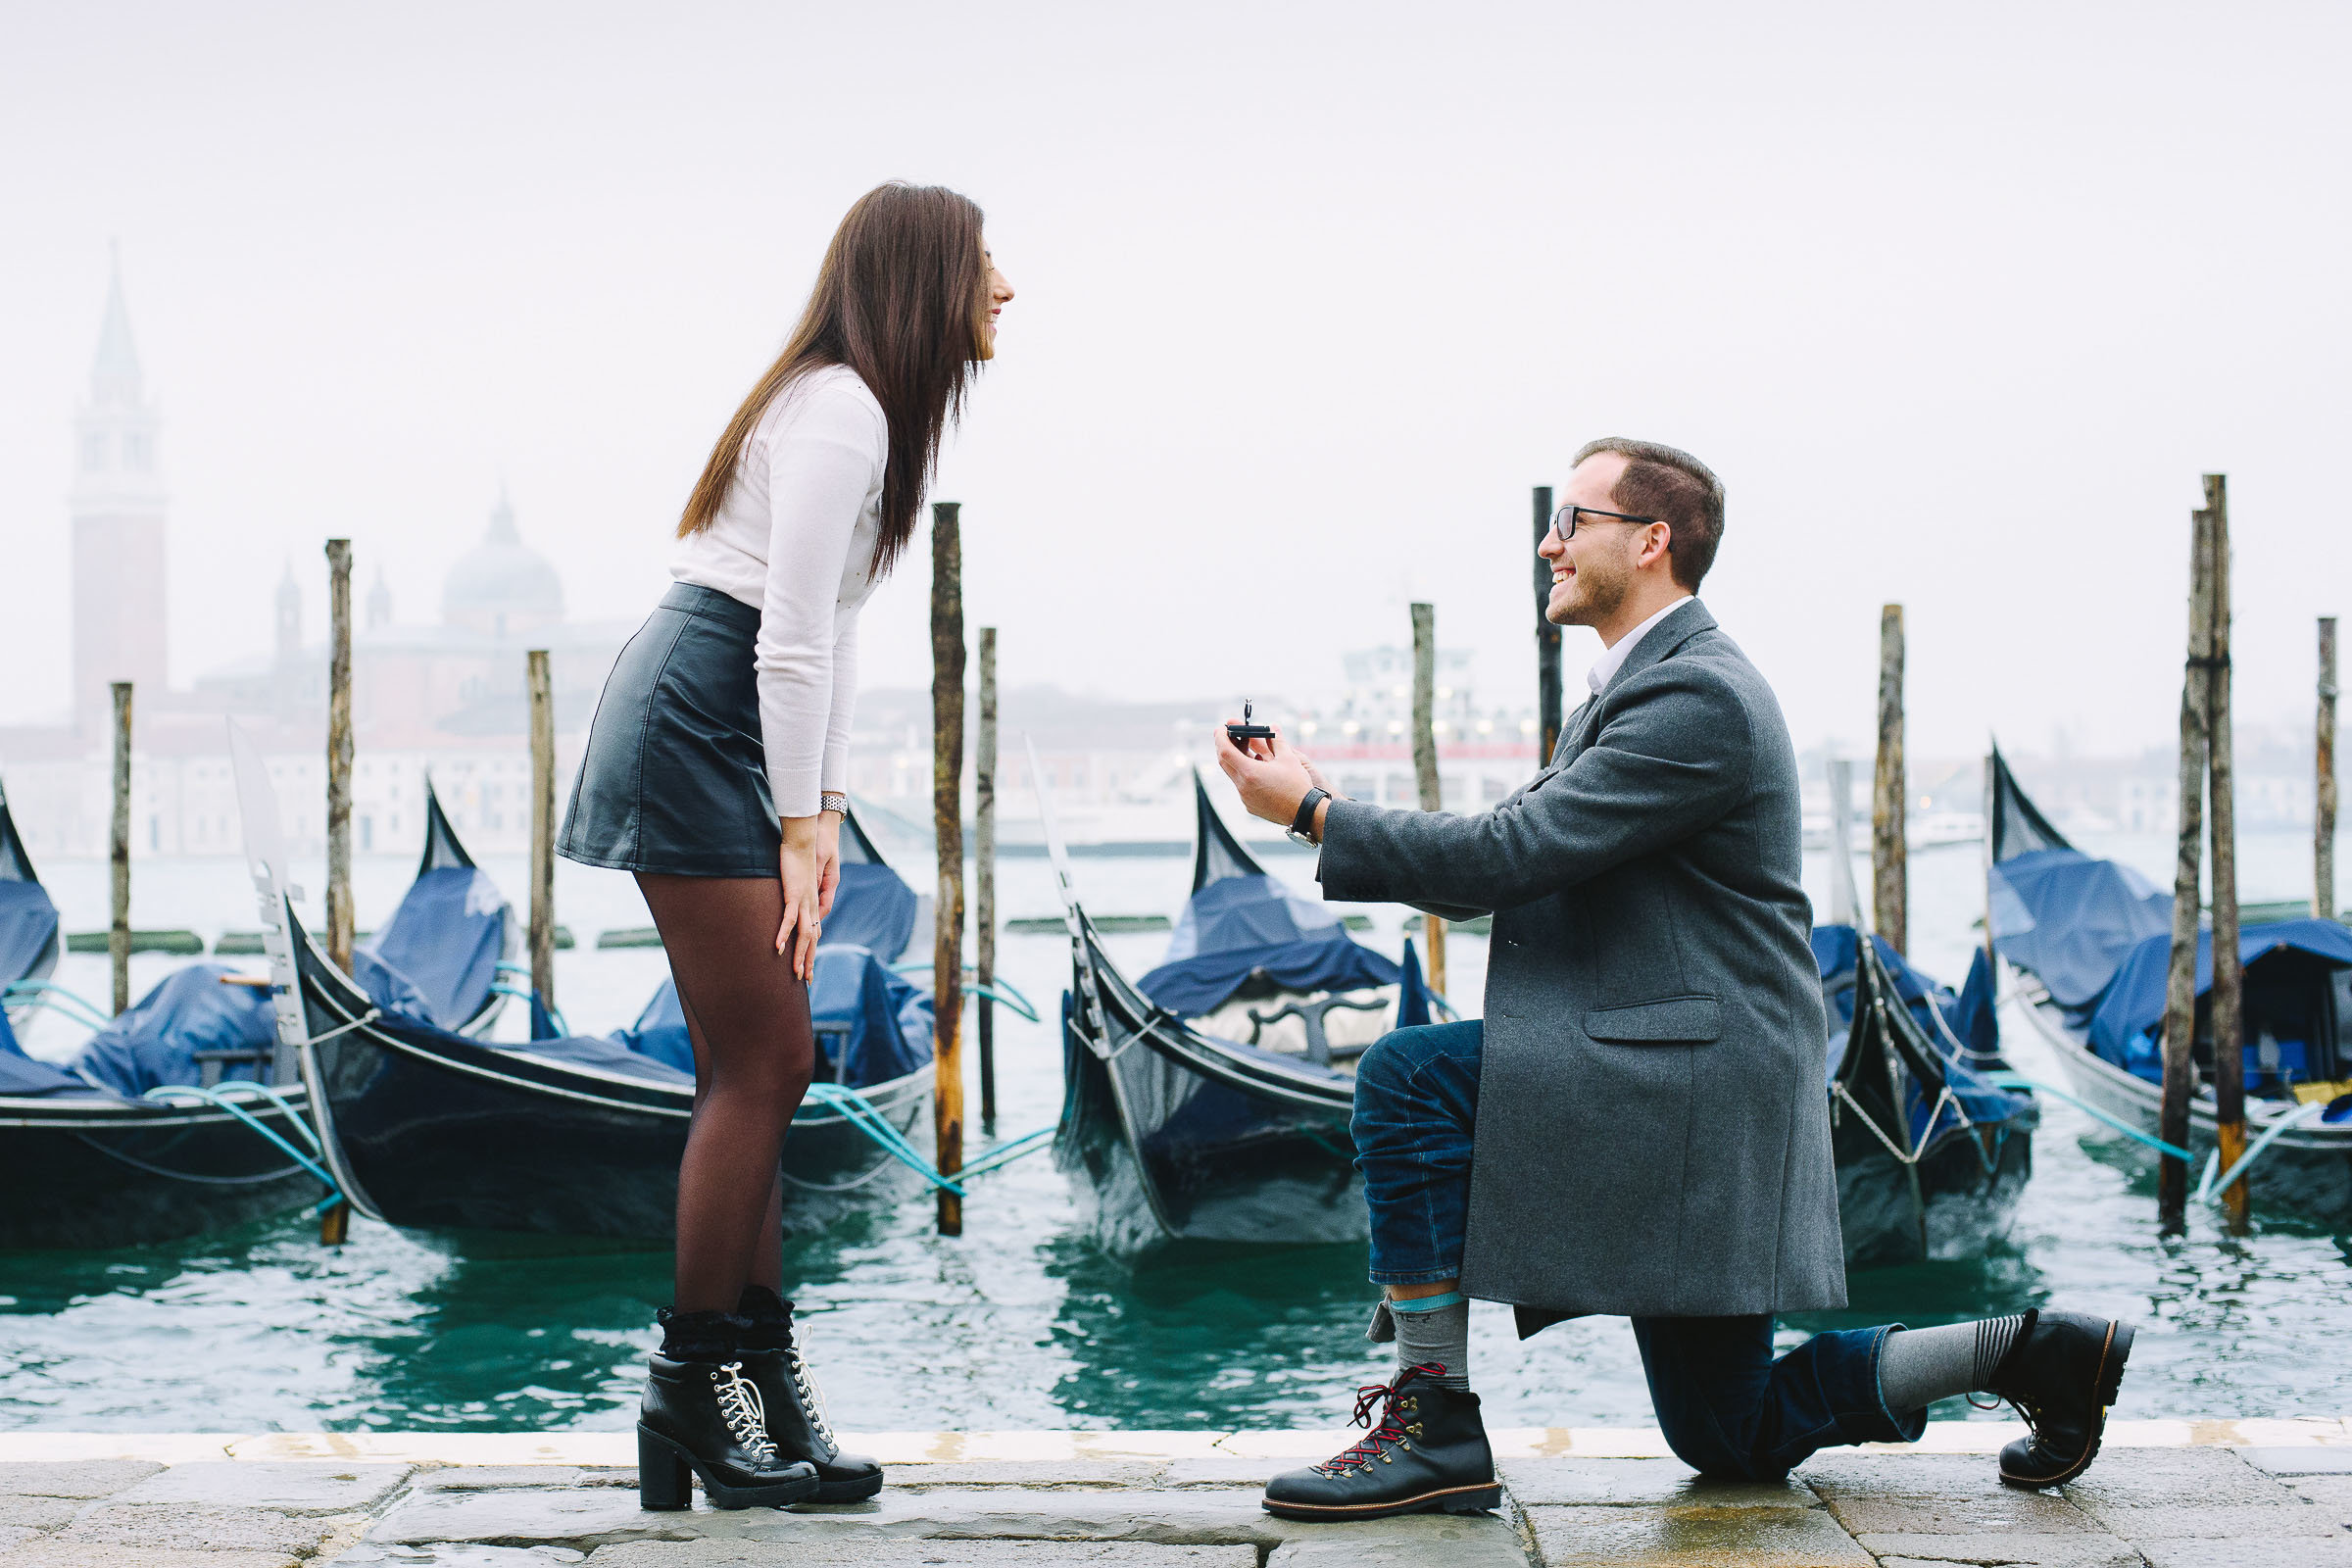 Where to hide the ring while proposing in Venice?